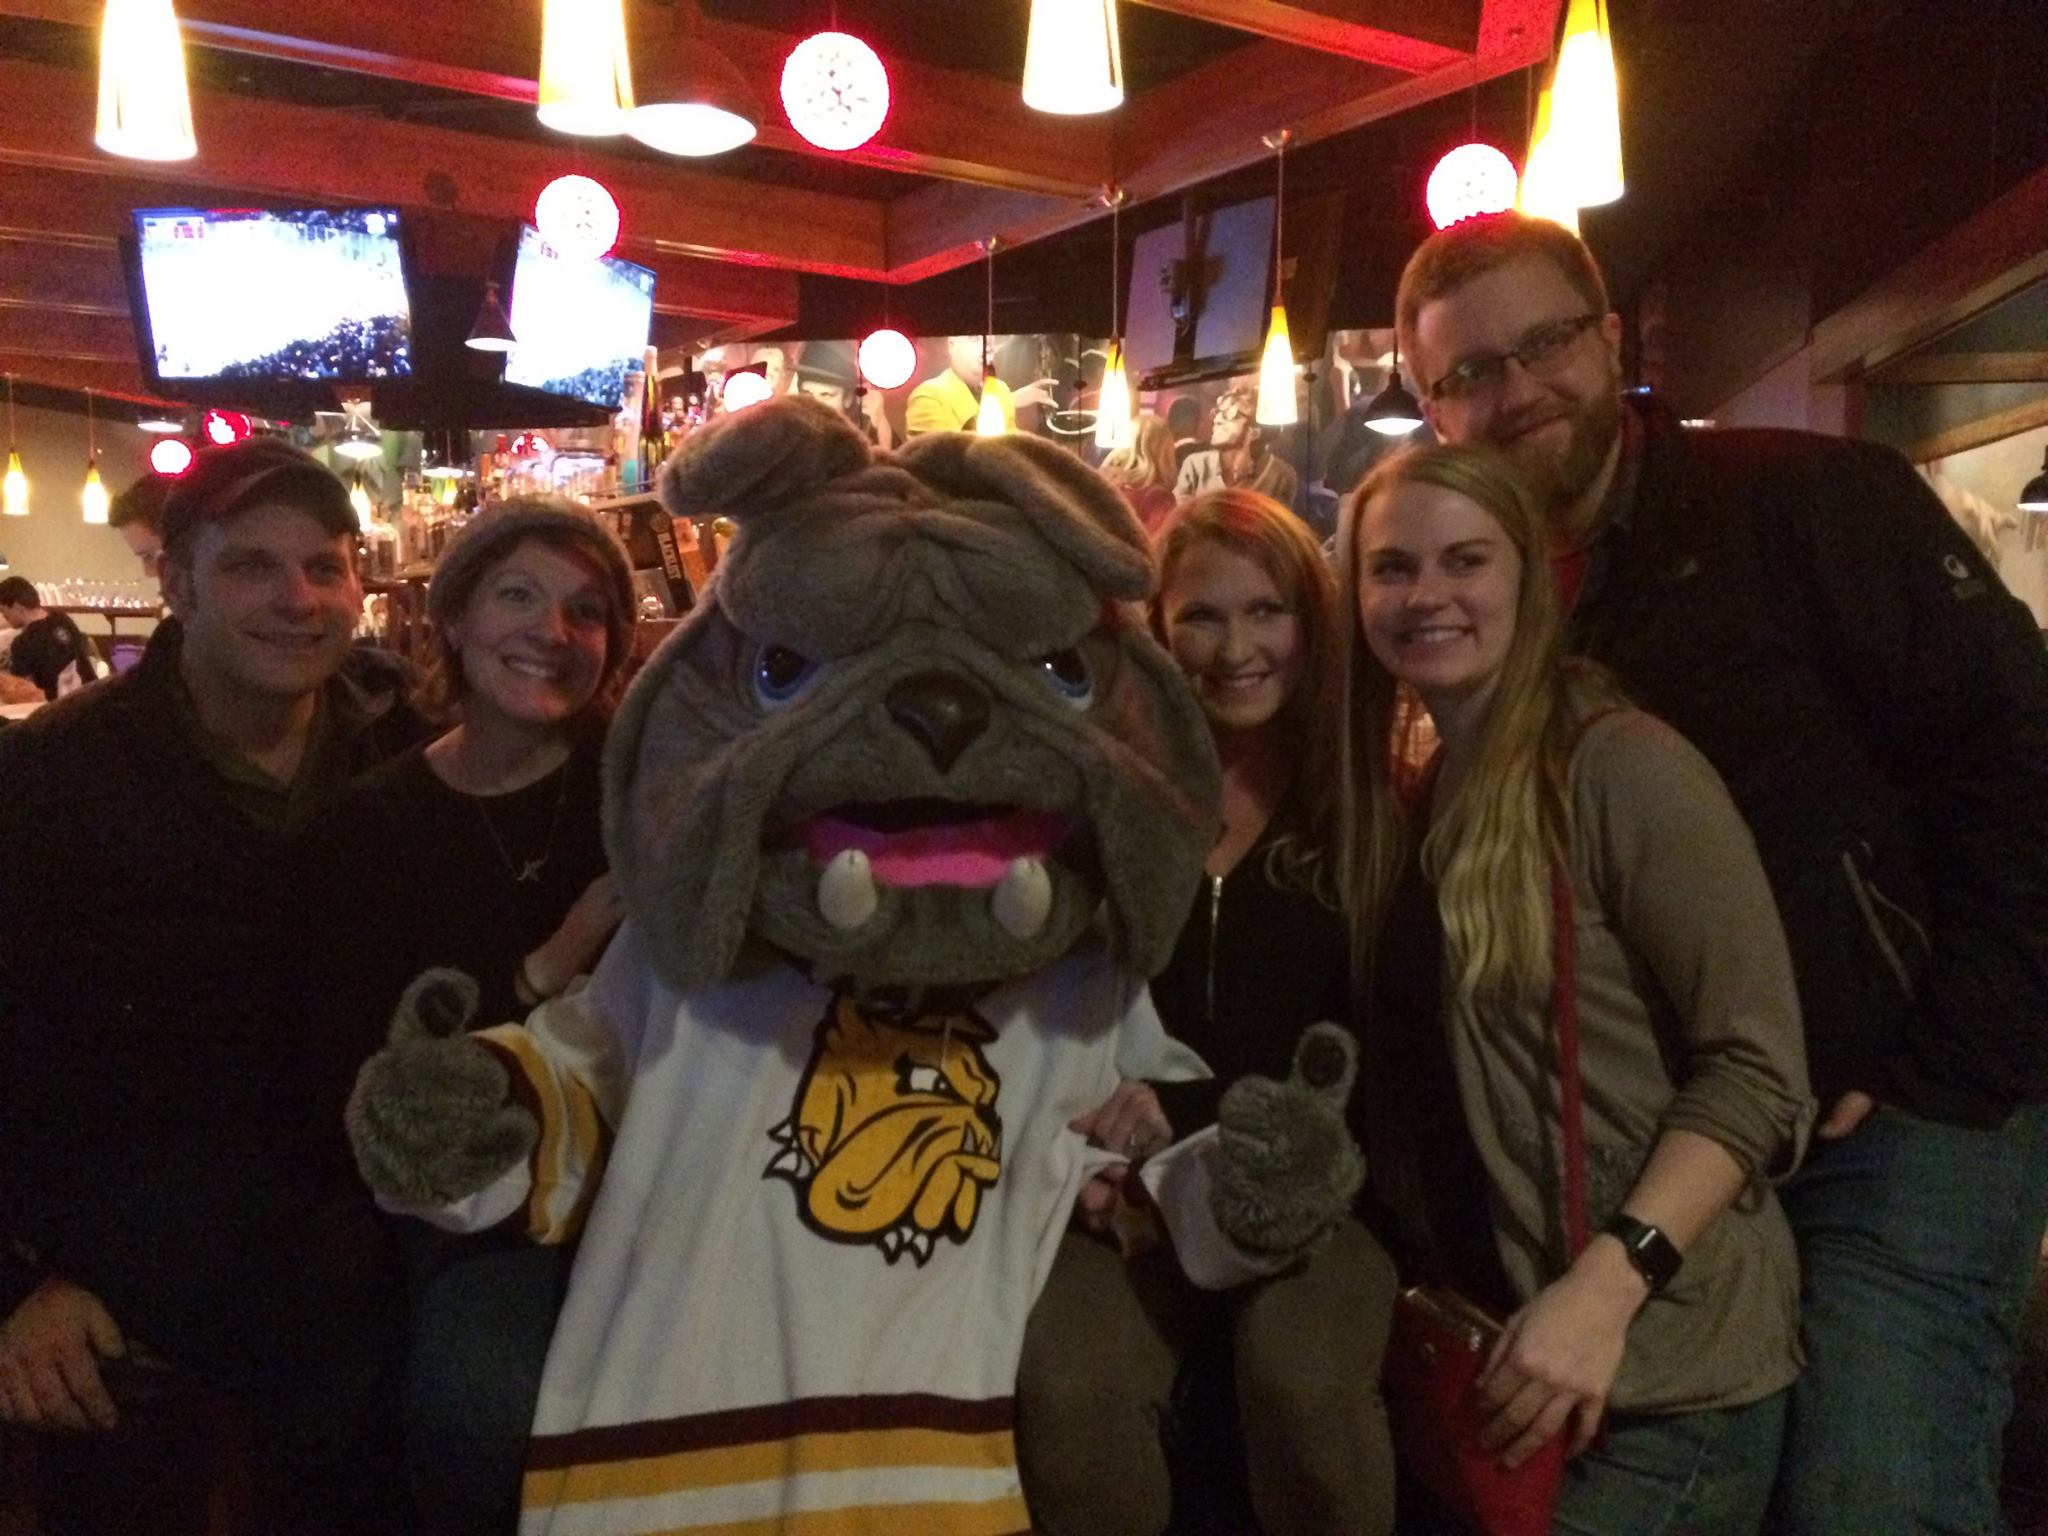 Champ meets with Bulldog fans during a frozen four watch party at Tavern on the Hill last spring  Photo courtesy: UMD Alumni Relations